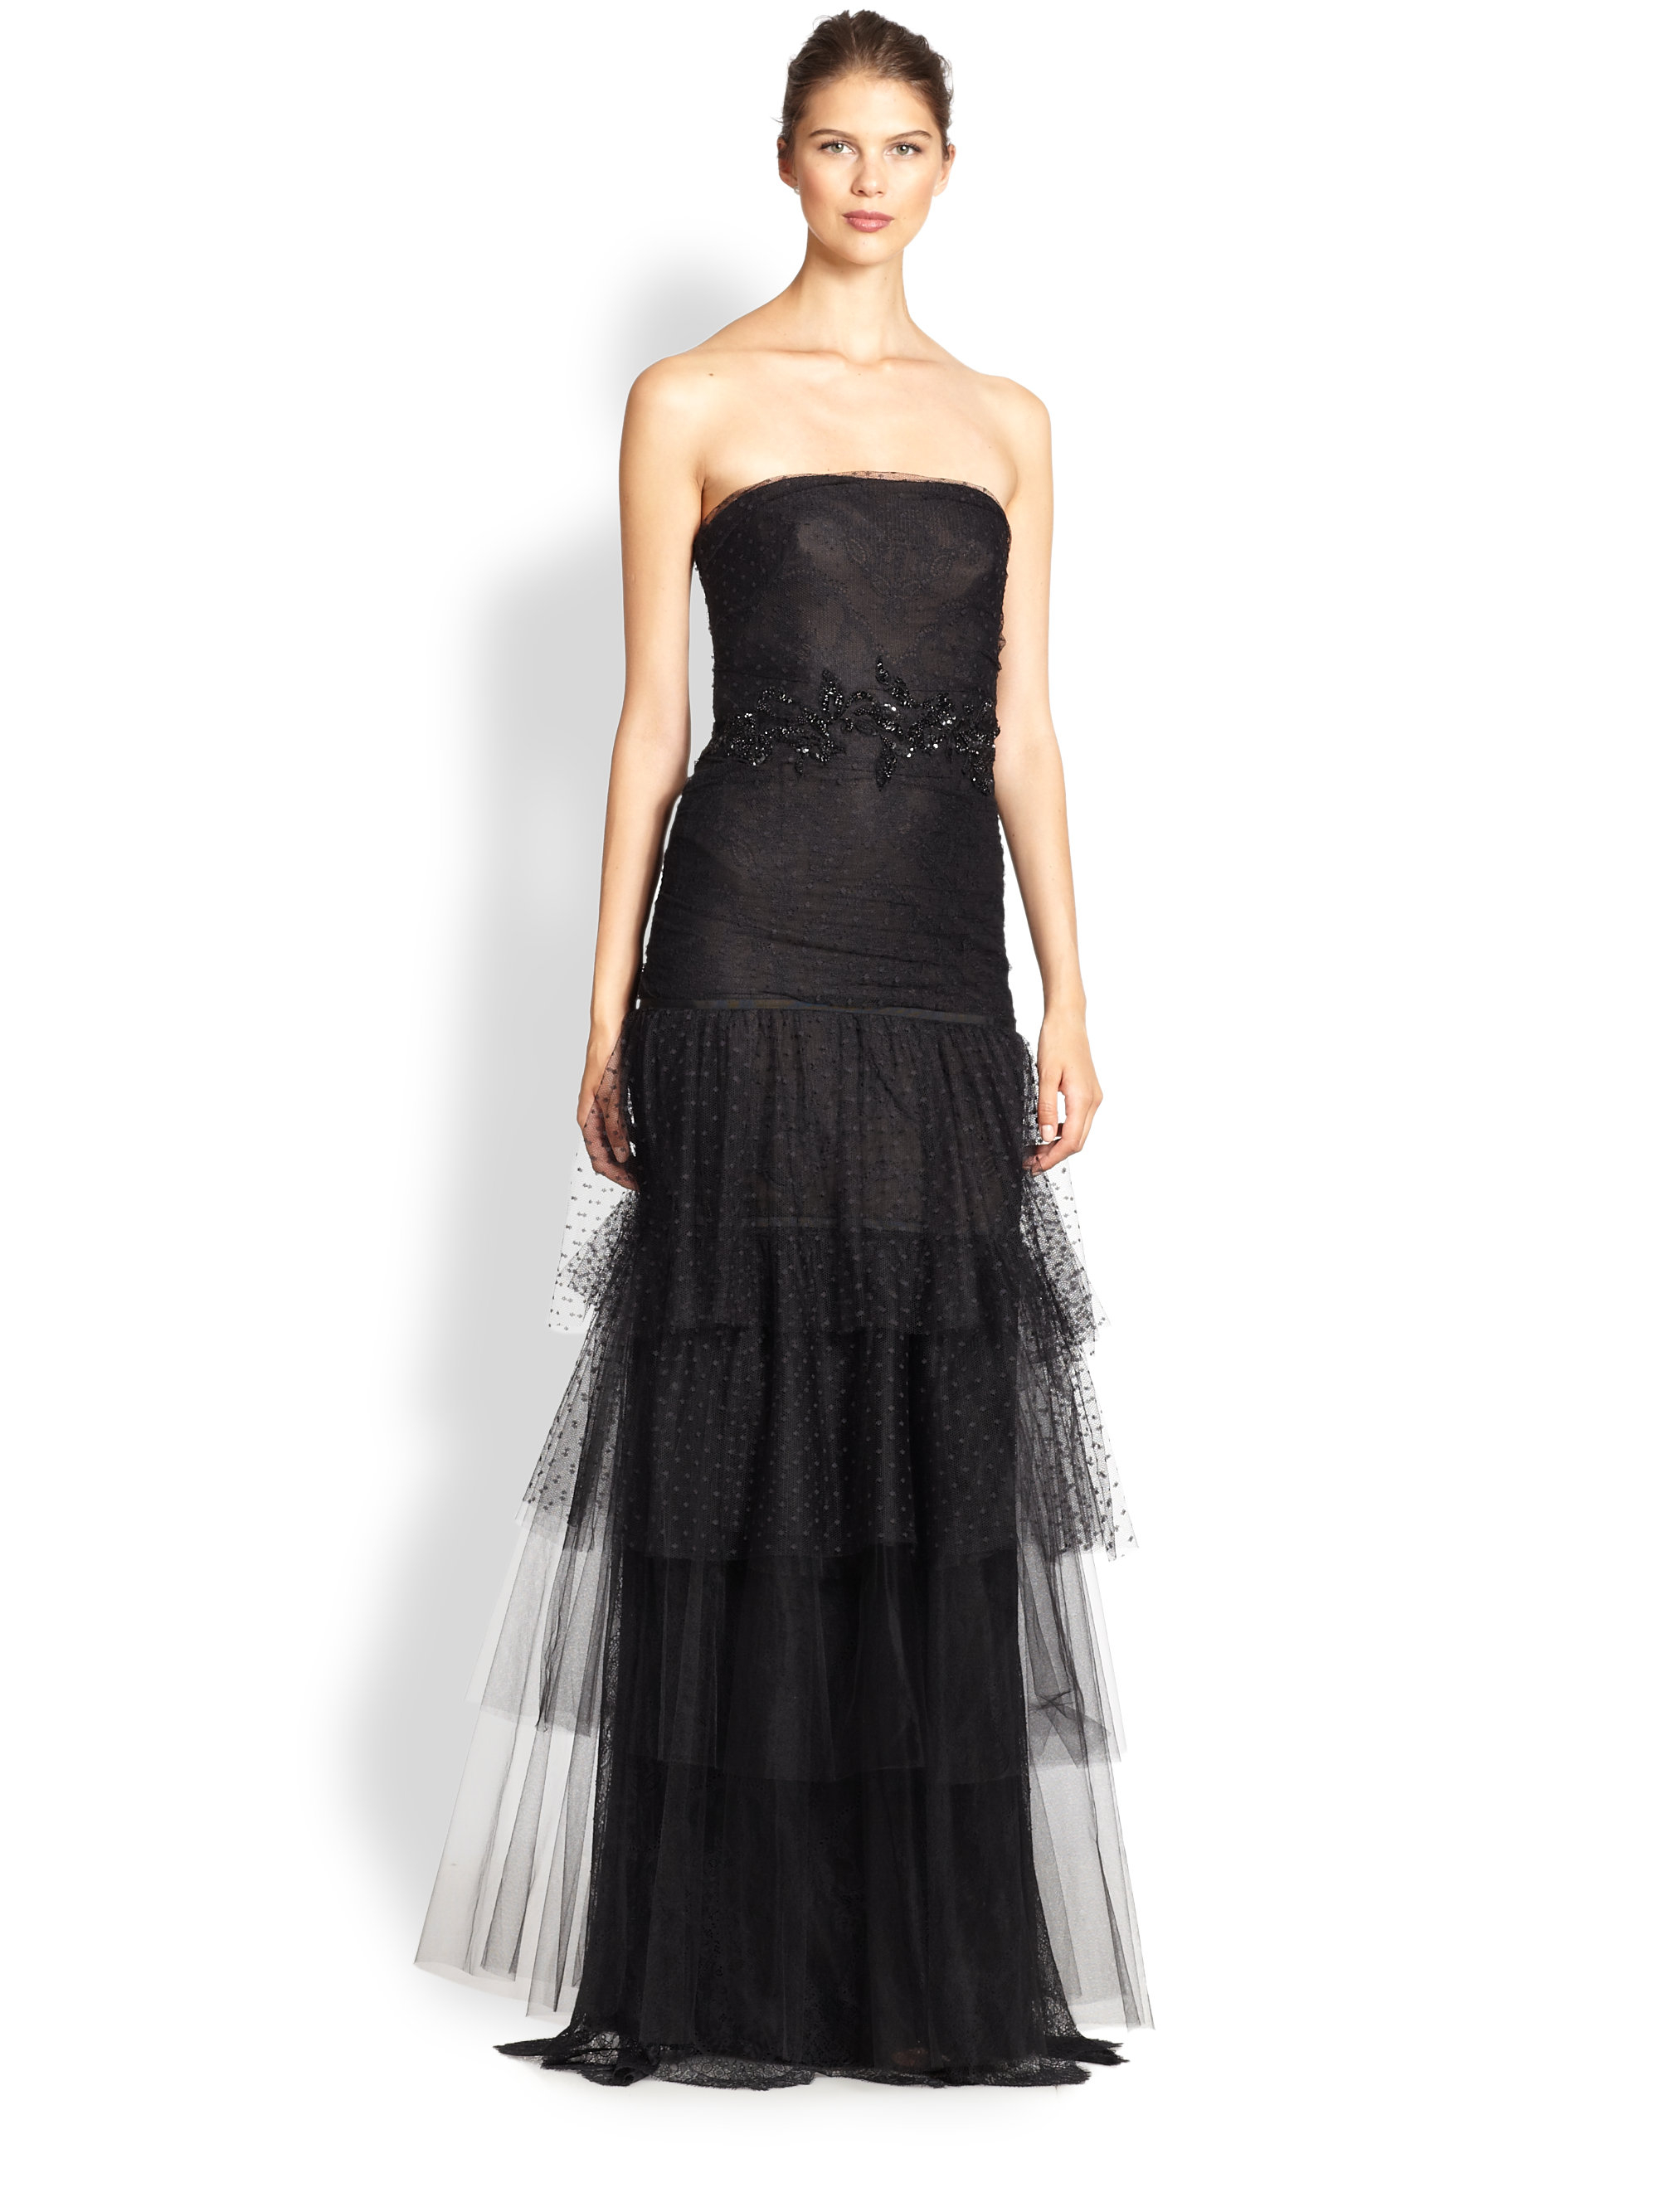 Notte by marchesa Beaded Lace & Tulle Gown in Black